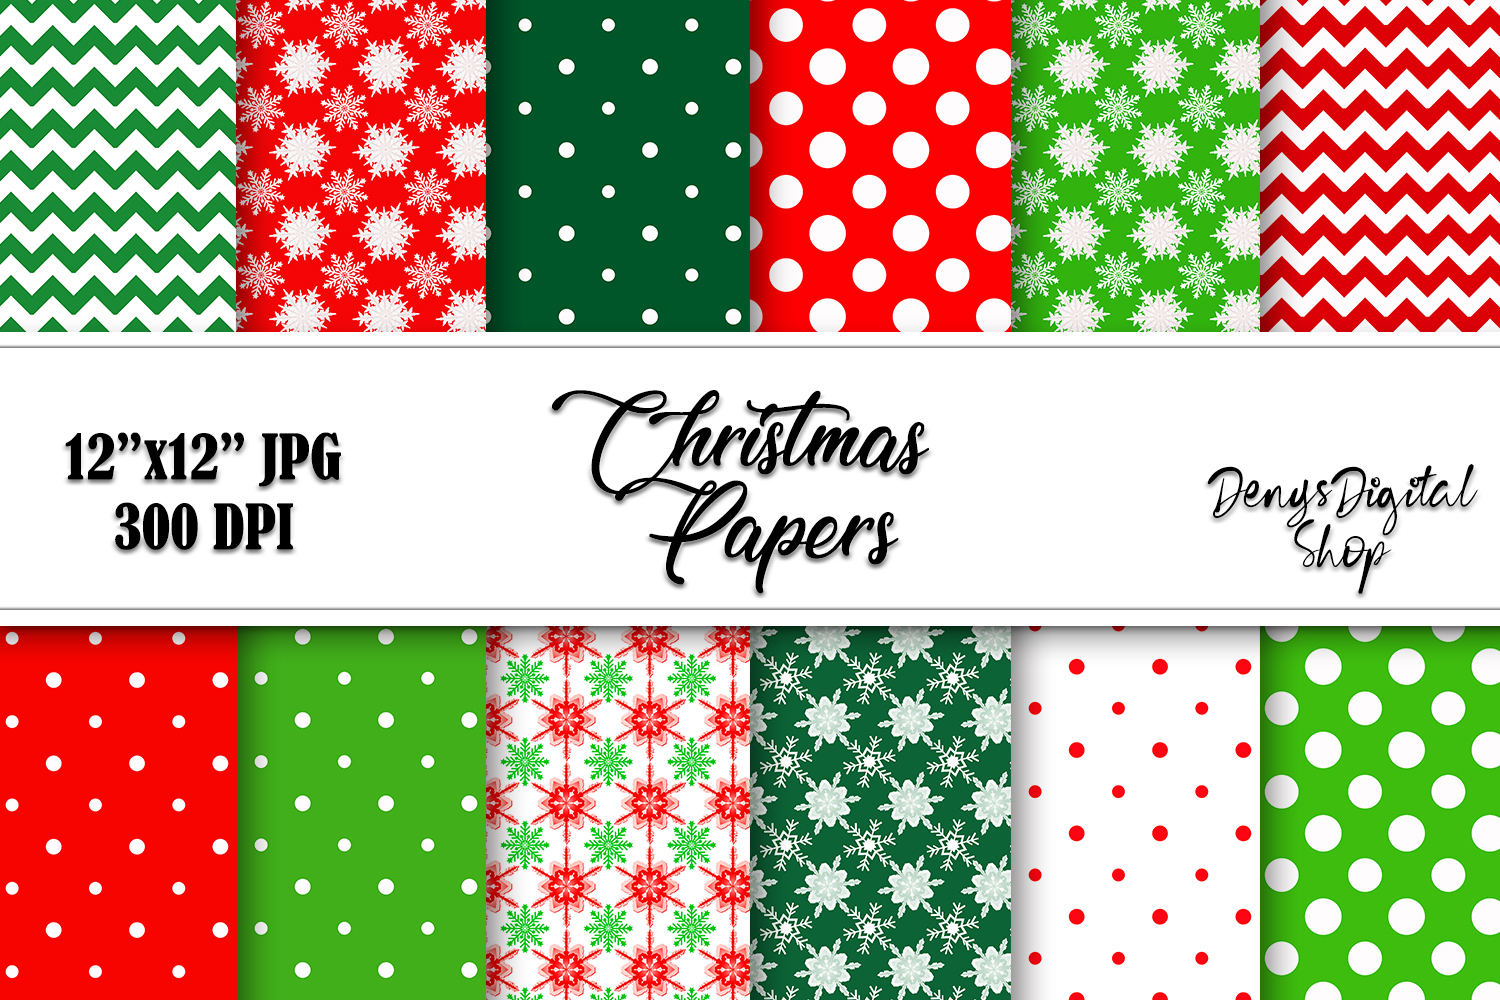 Download Free Christmas Papers Scrapbook Digital Graphic By Denysdigitalshop for Cricut Explore, Silhouette and other cutting machines.